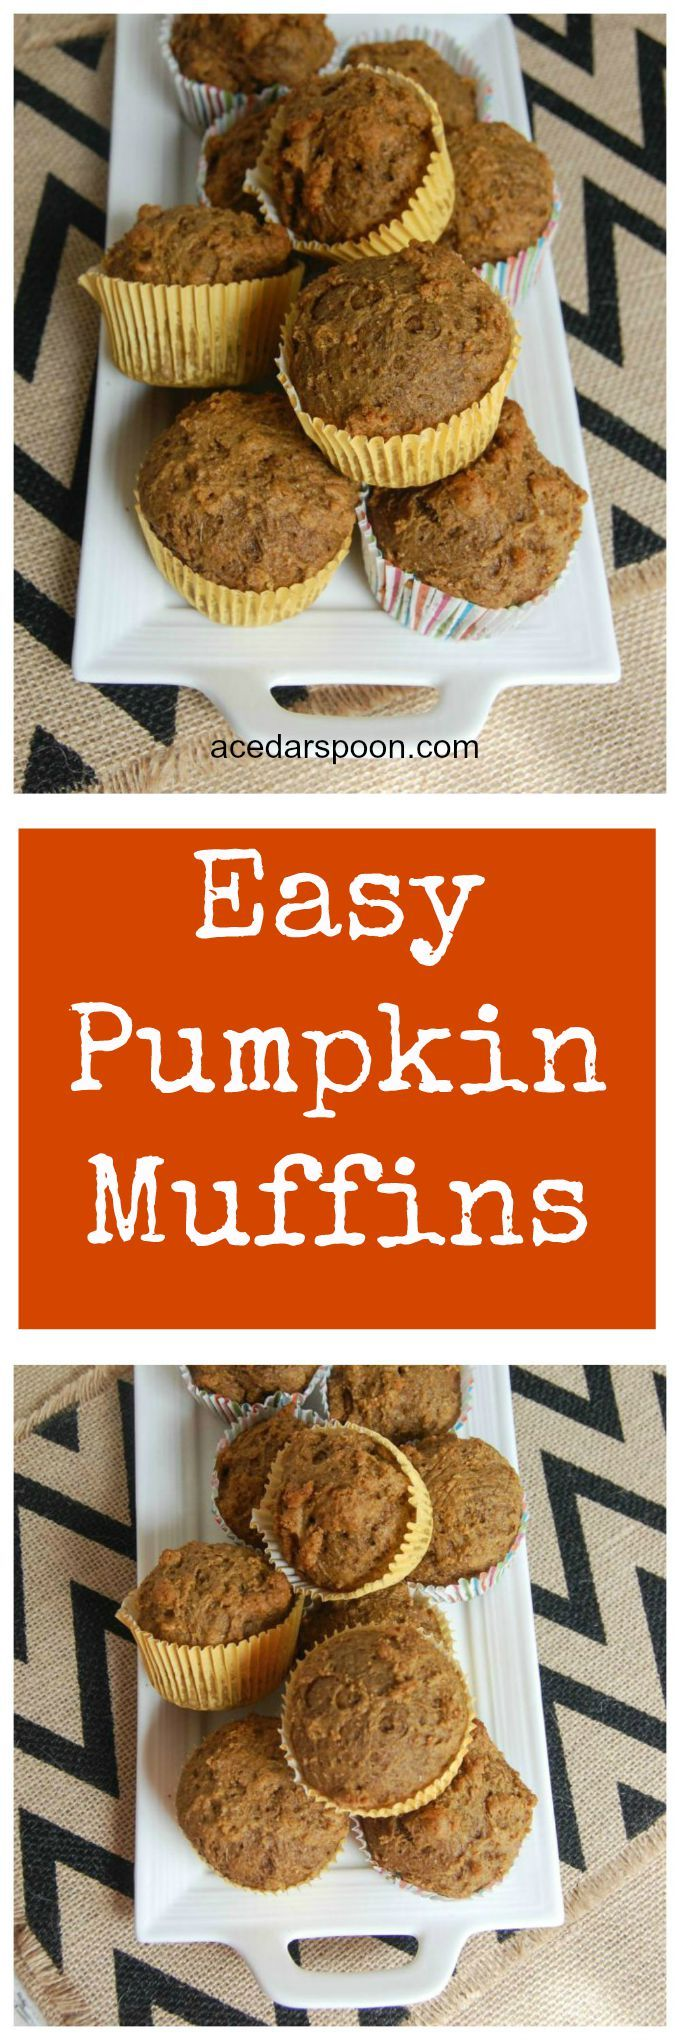 Easy Pumpkin Muffins are a healthier take on your favorite pumpkin muffins using Greek yogurt and whole wheat flour. You can feel good feeding these to your family and kids. //A Cedar Spoon